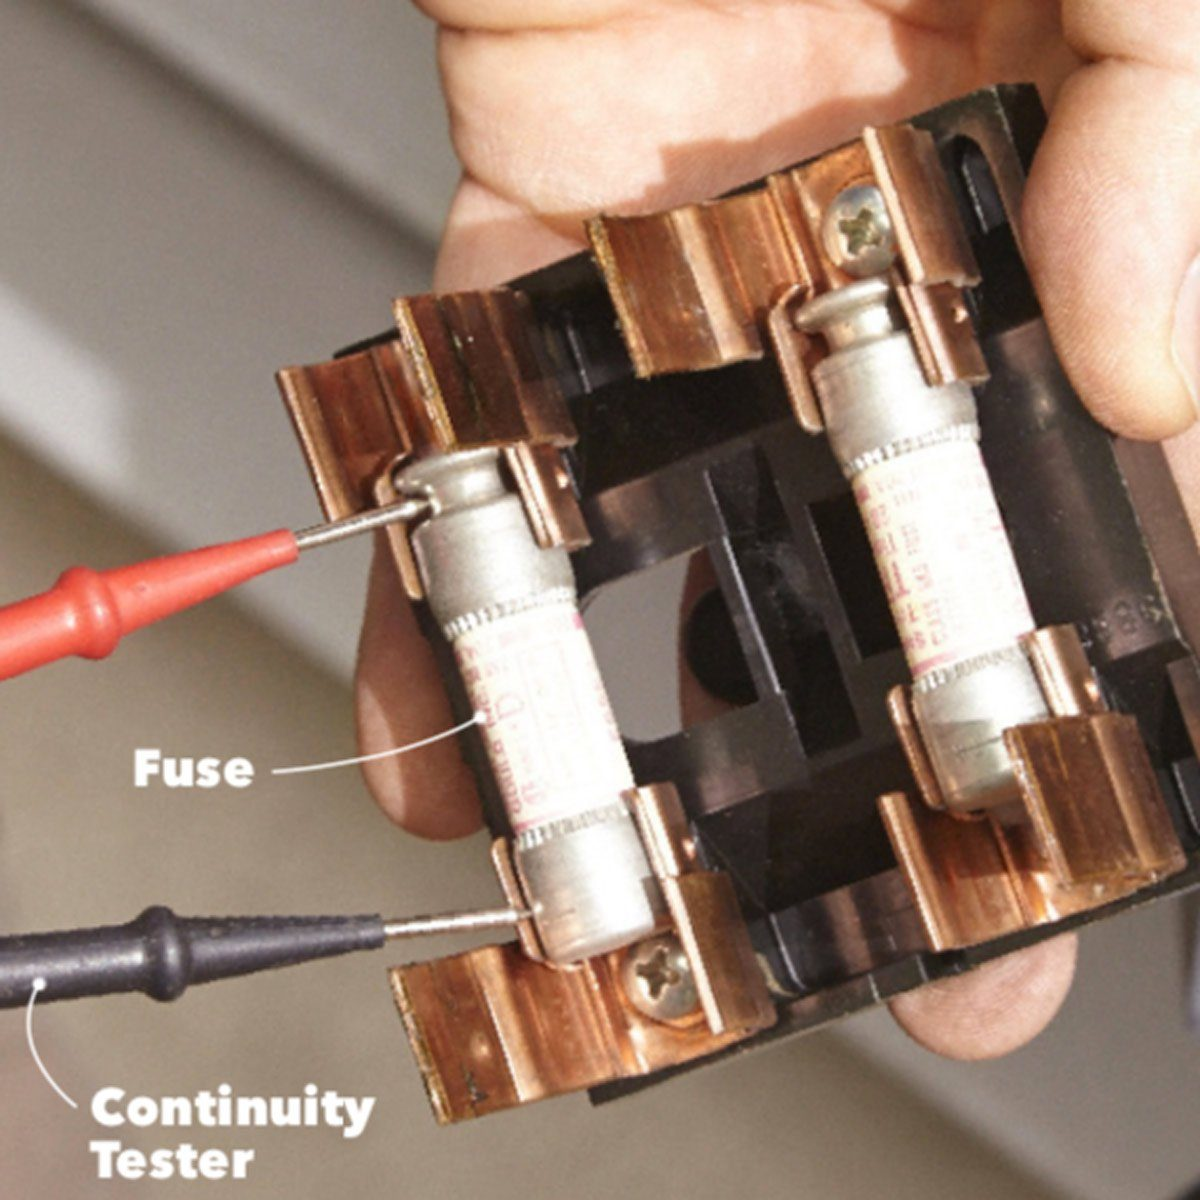 Checking to see if fuses are burnt out with continuity tester | Construction Pro Tips